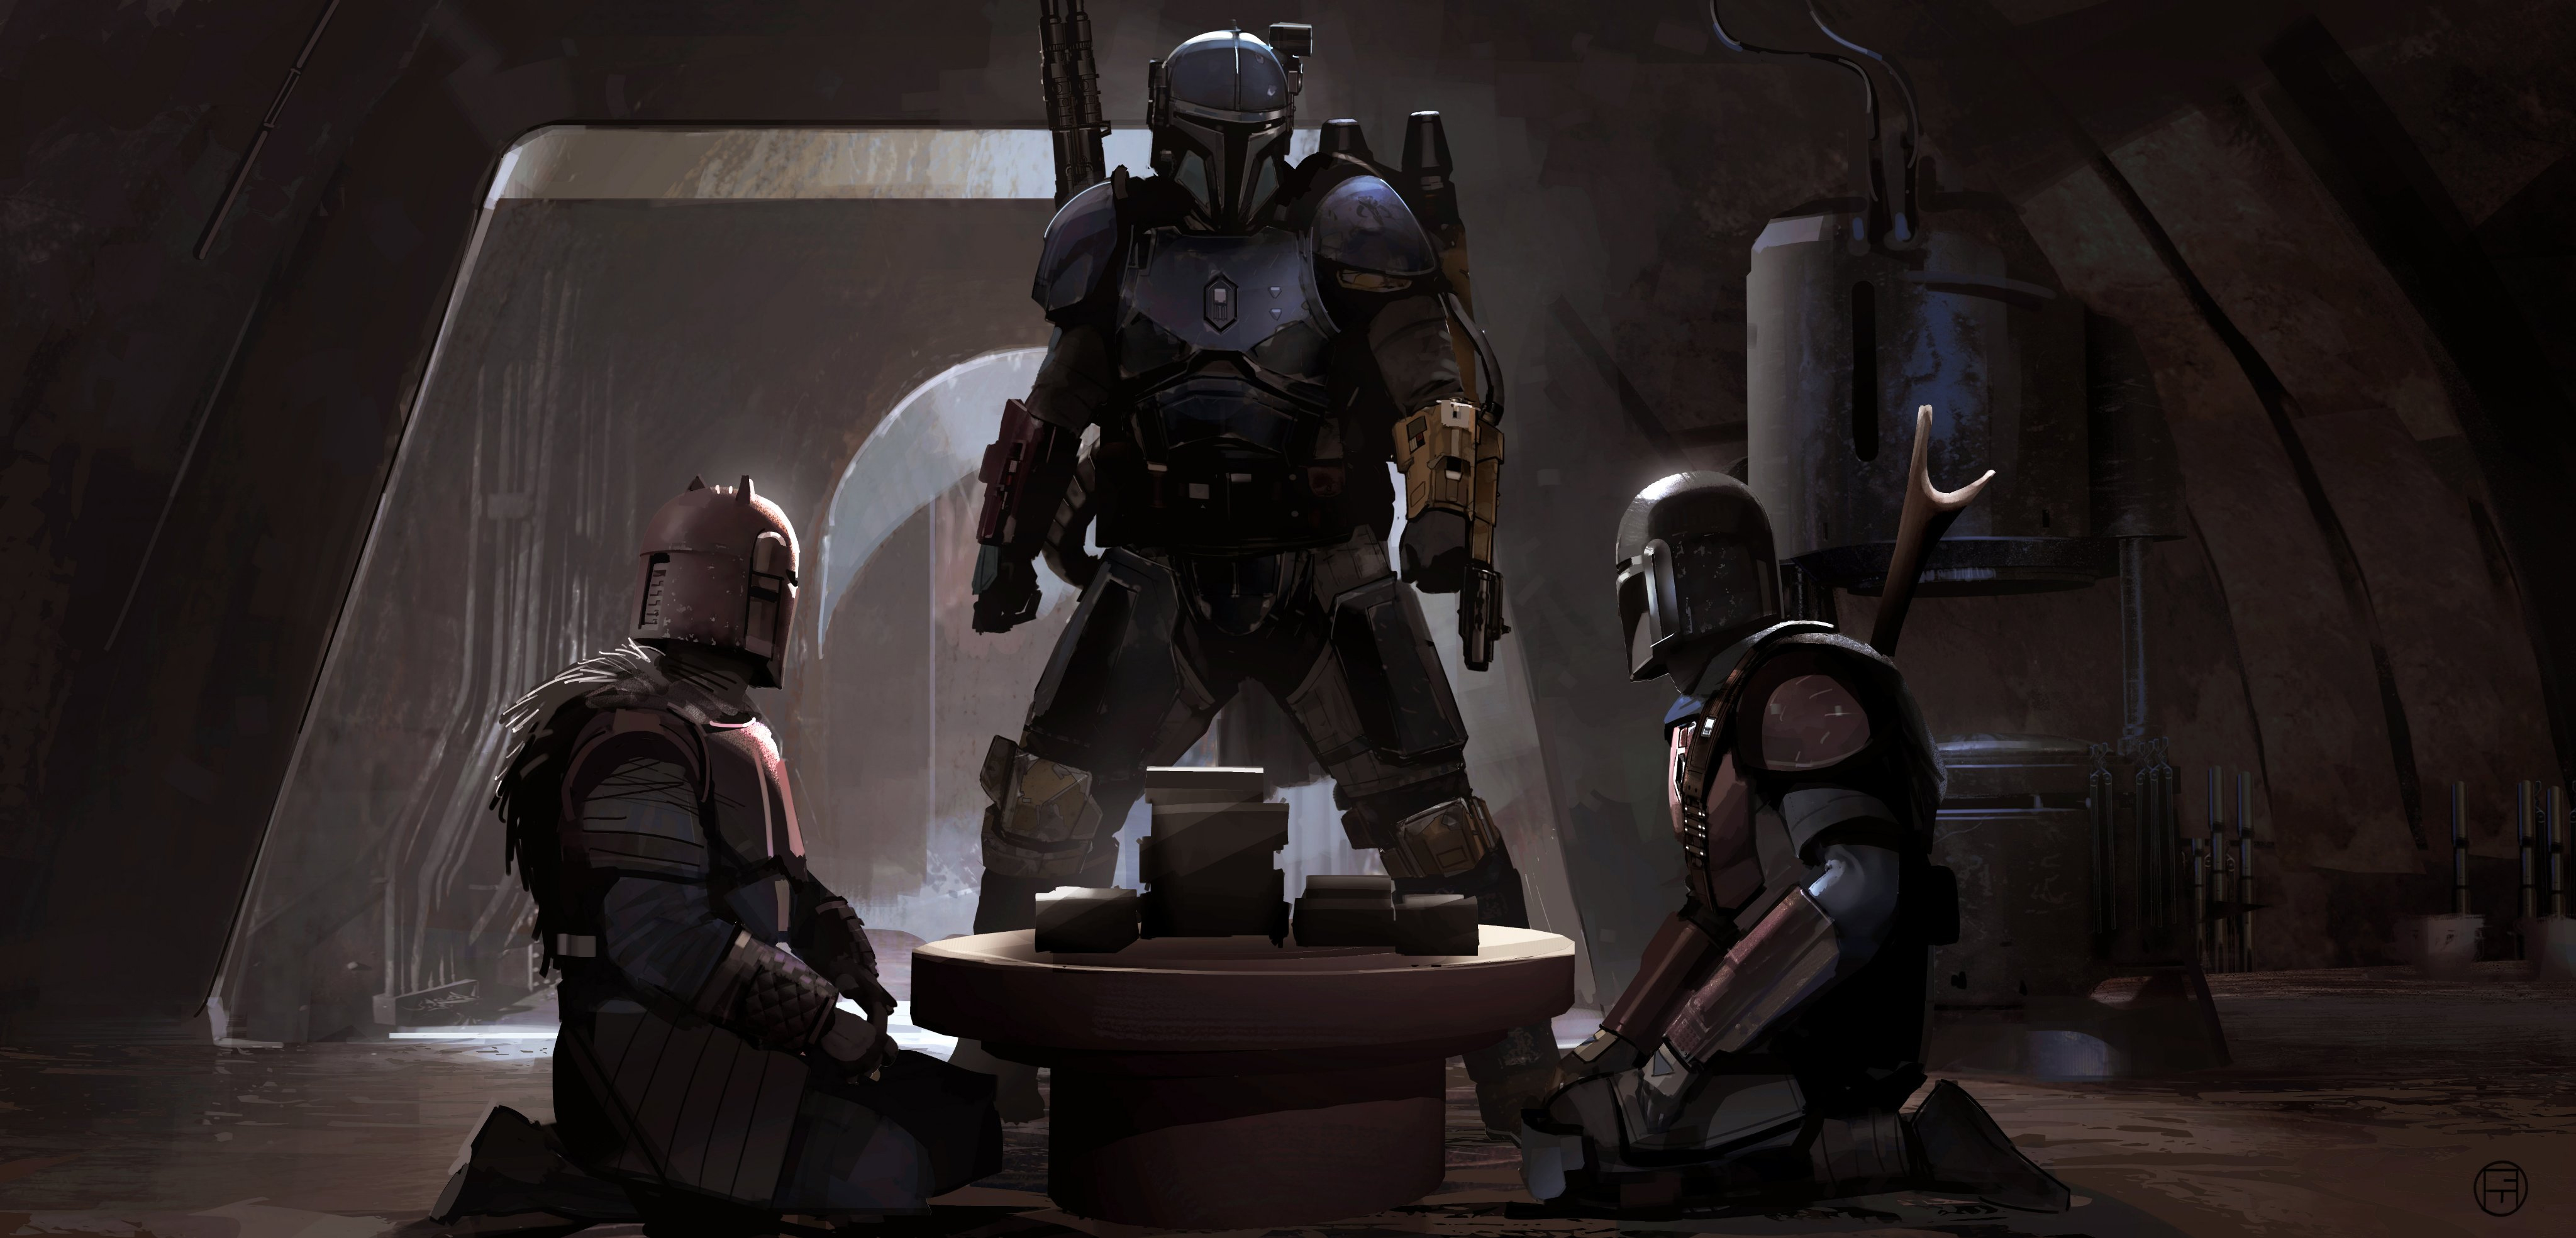 What Happened To Mandalore And Other Questions Film